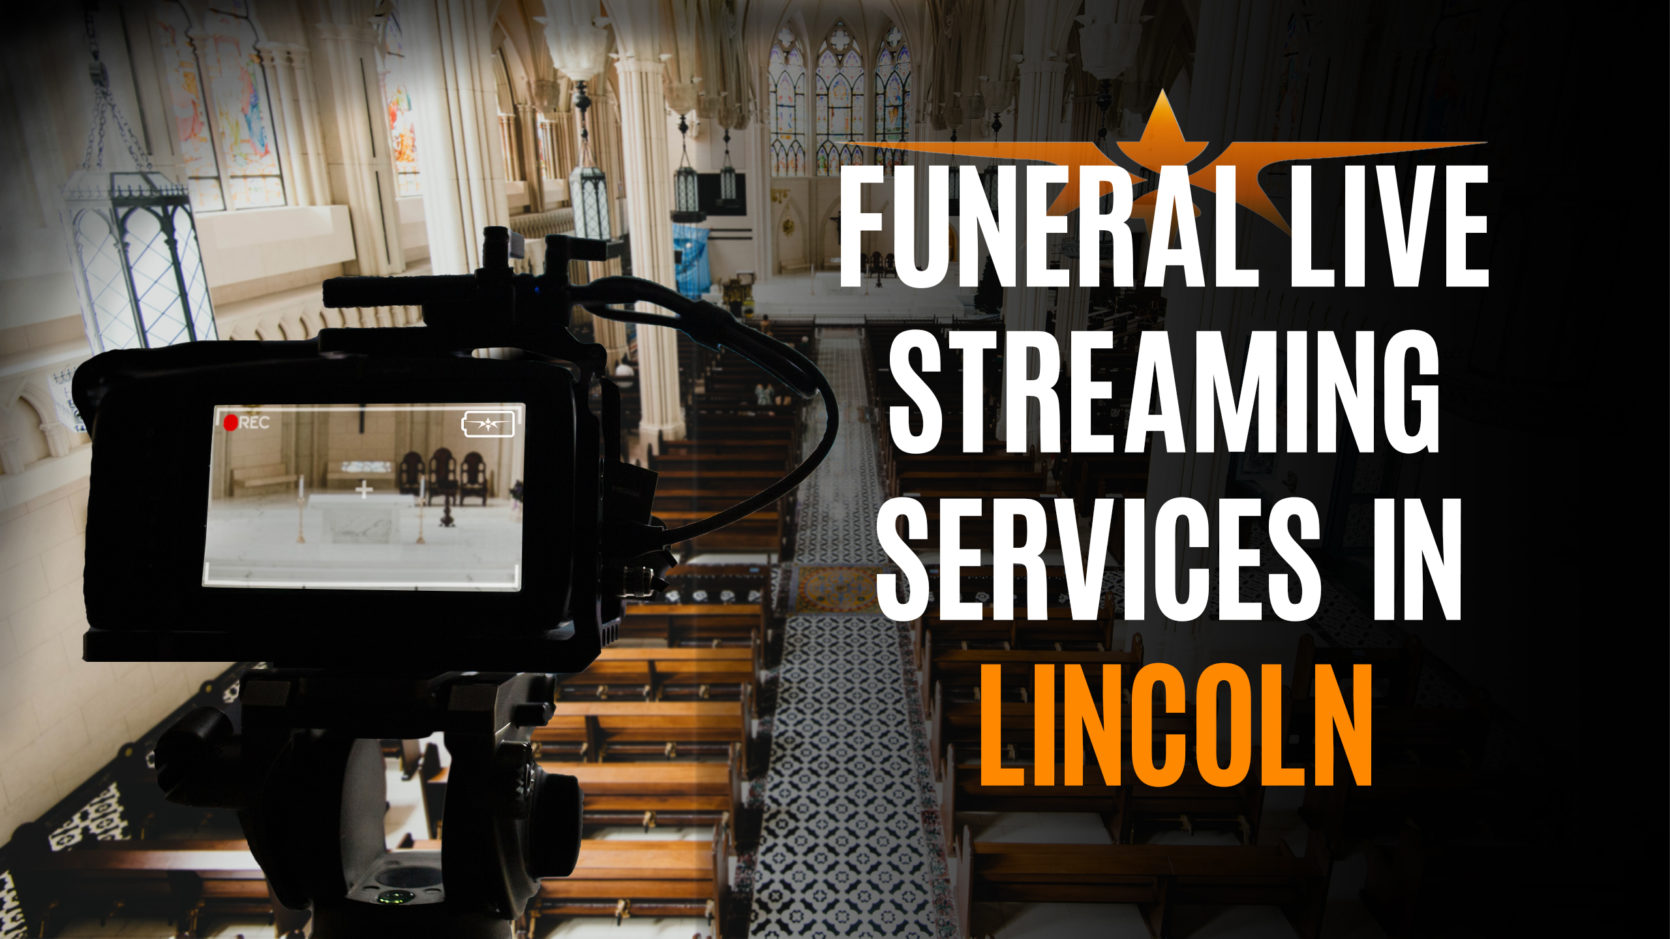 Funeral Live Streaming Services in Lincoln